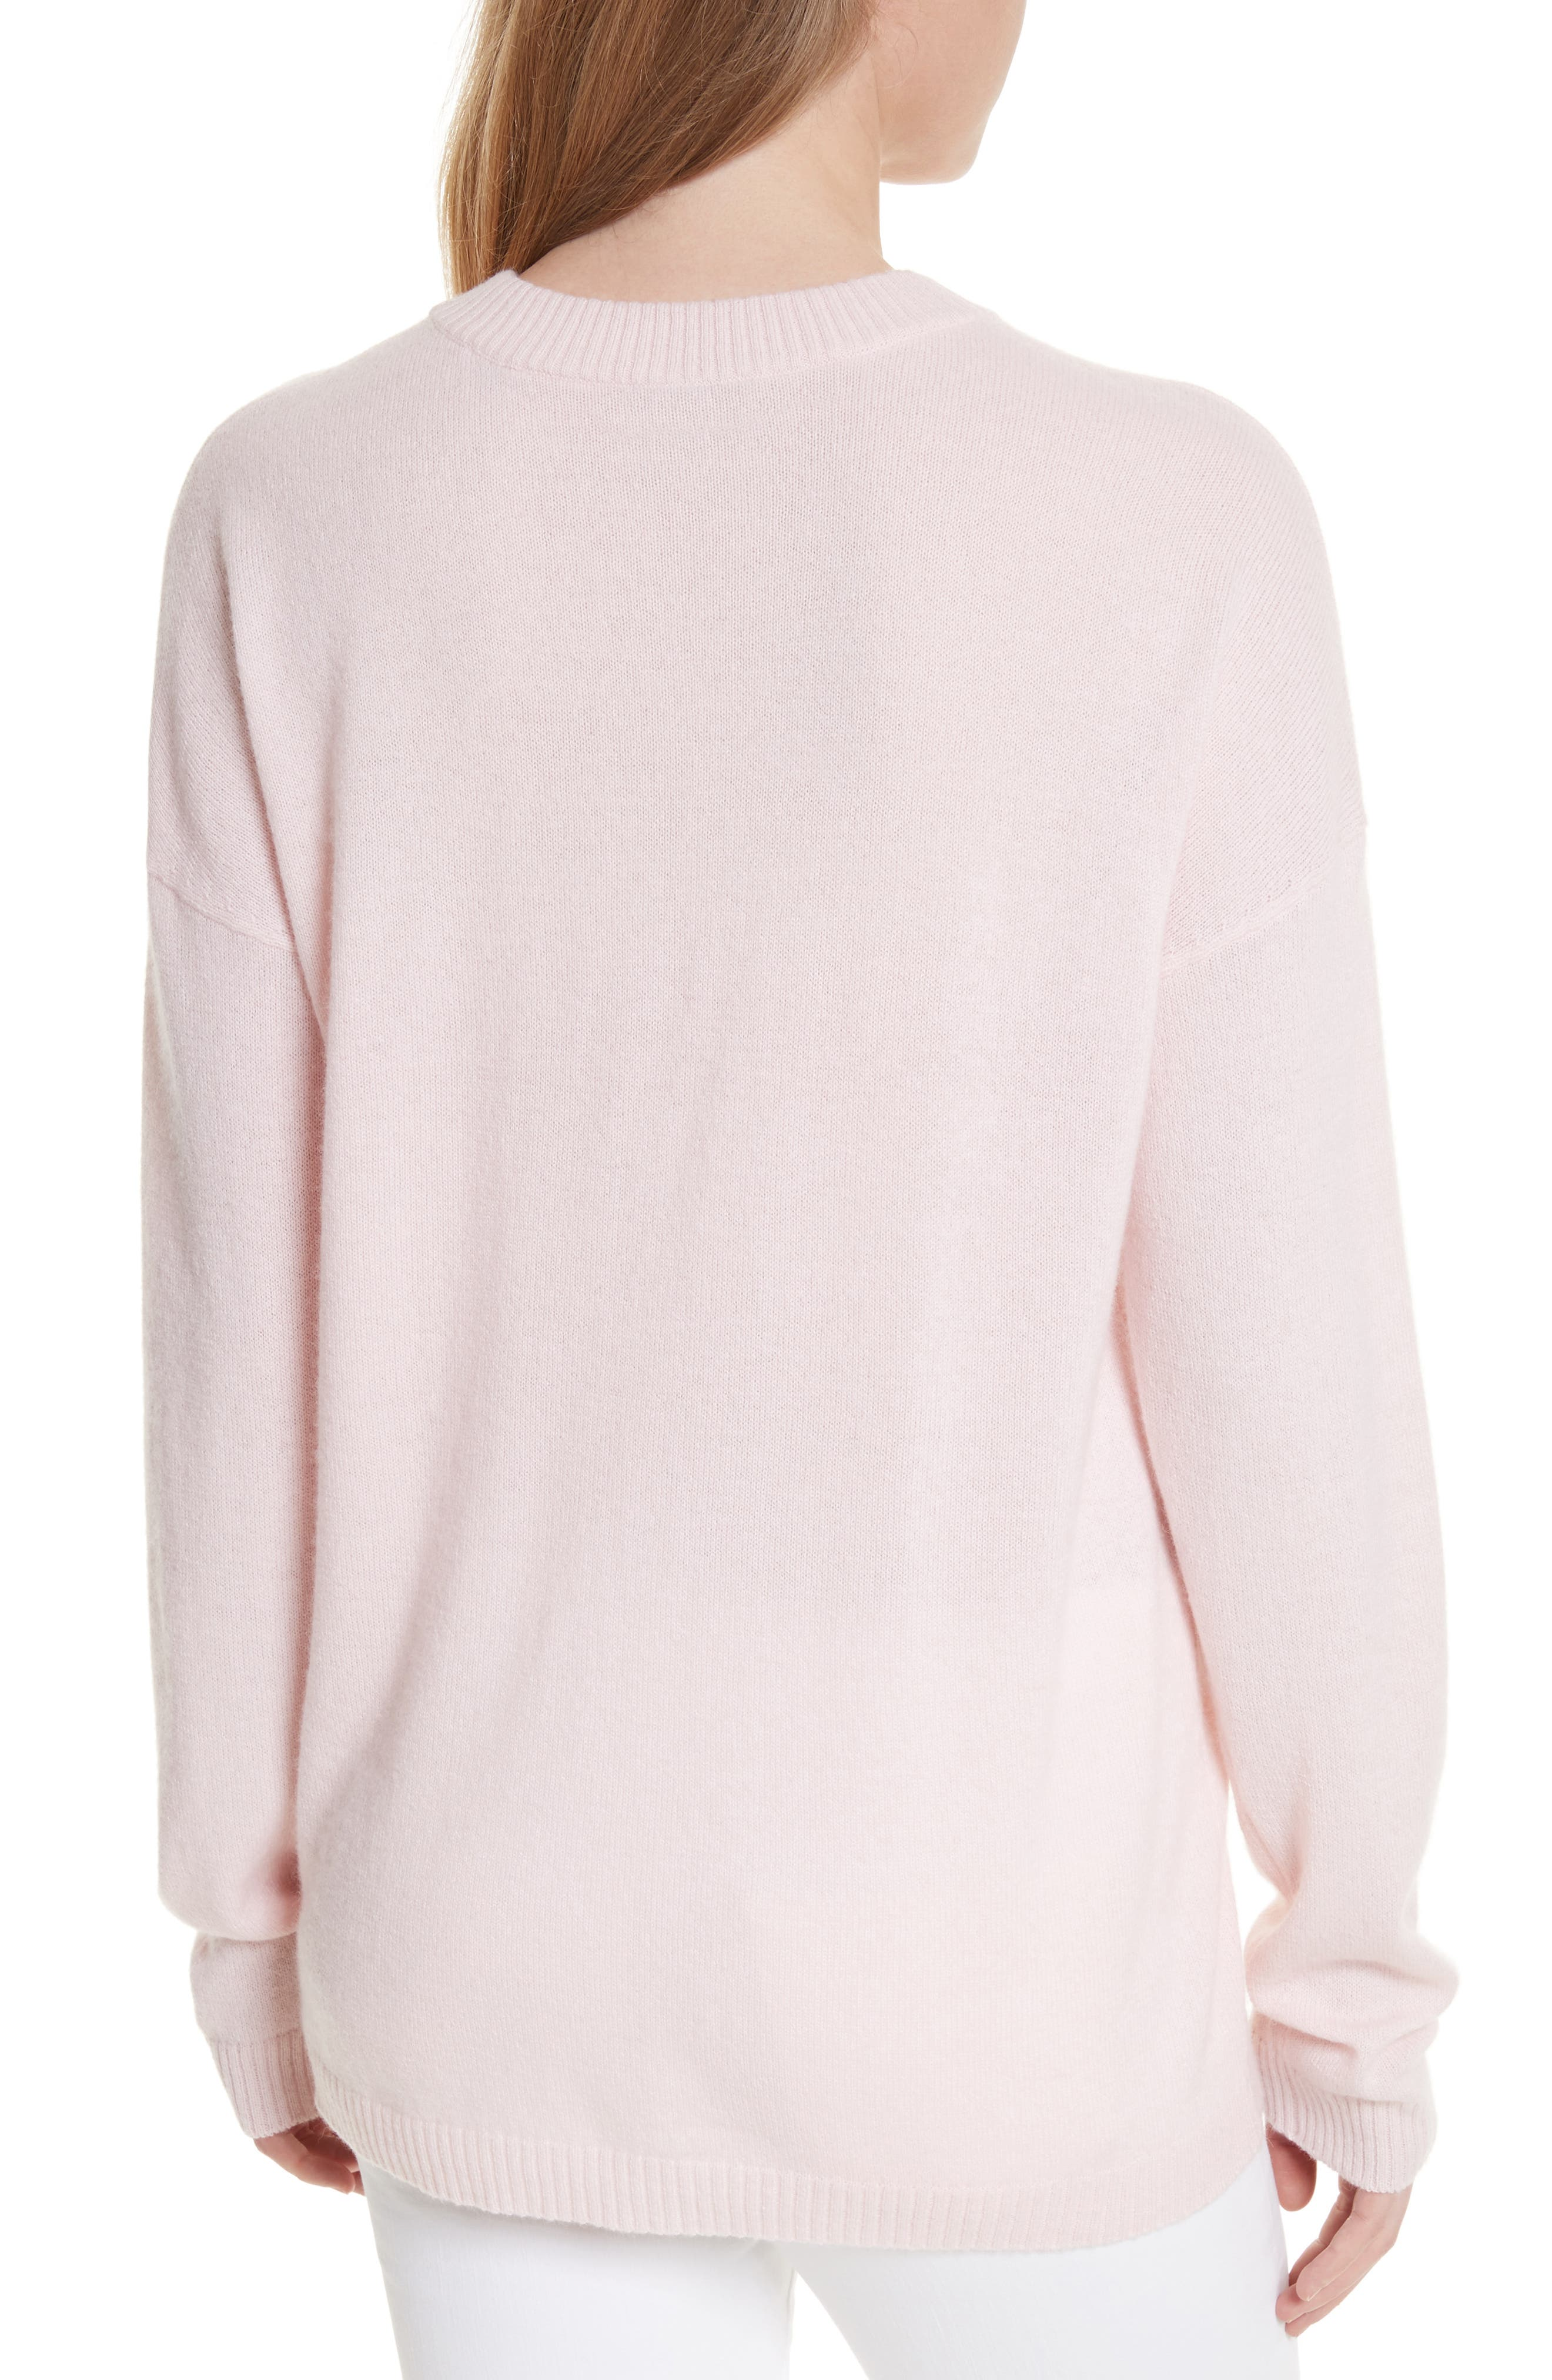 Bryce Oversize Cashmere Sweater,                             Alternate thumbnail 2, color,                             650